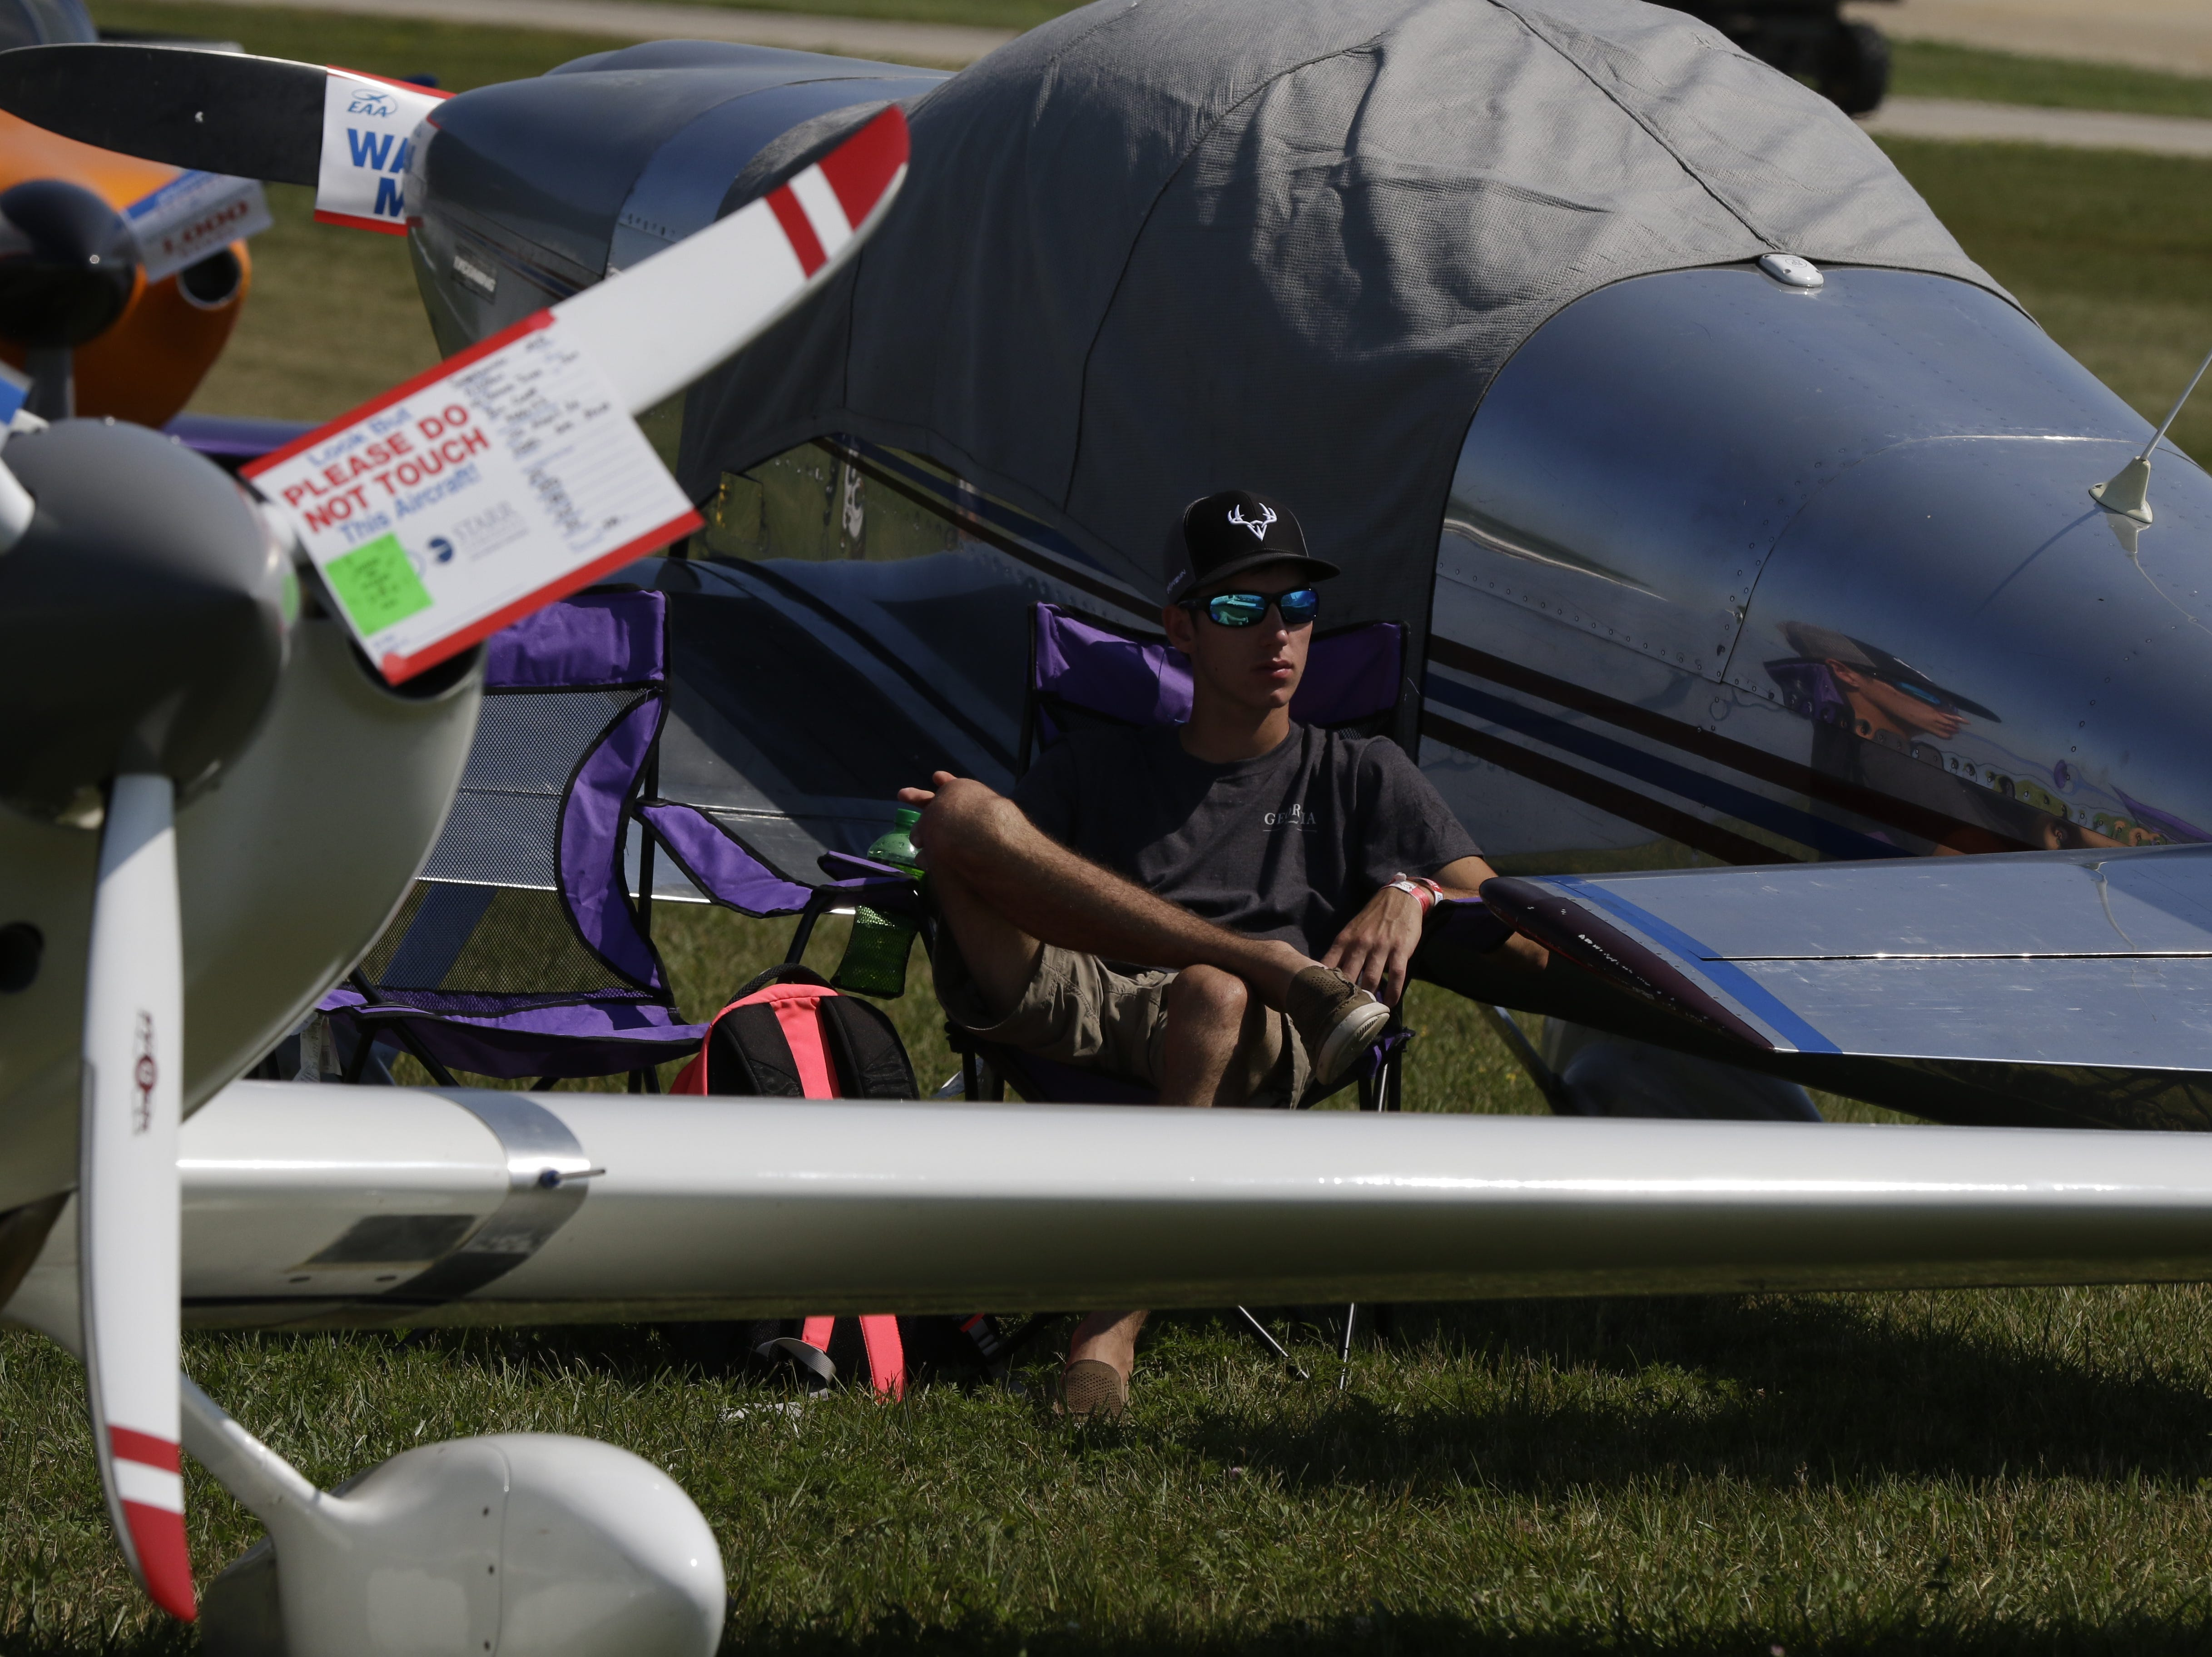 Levi Griffin of Valdosta, Georgia relaxes between plane on the flightline, Tuesday, July 24, 2018, in Oshkosh, Wis.  The 66th annual Experimental Aircraft Association Fly-In Convention, AirVenture 2018 draws over 500,000 people annually to the area.  The convention runs through July 29. Joe Sienkiewicz/USA Today NETWORK-Wisconsin